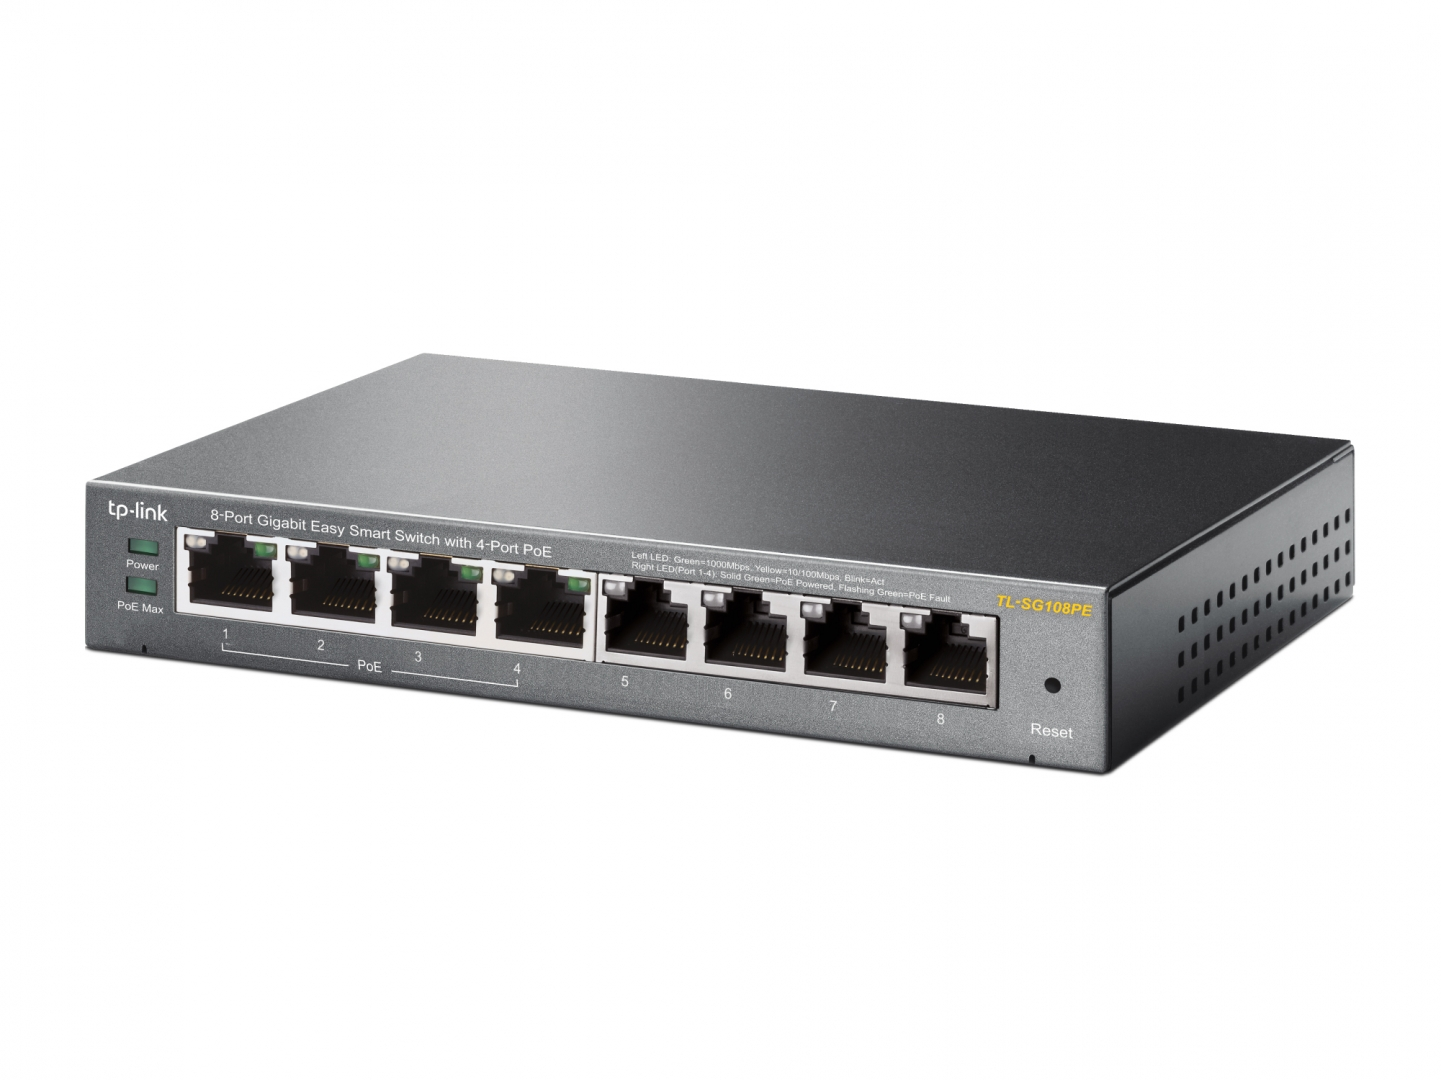 TP-LINK TL-SG108PE 8-Port Gigabit Easy Smart Switch with 4-Port PoE